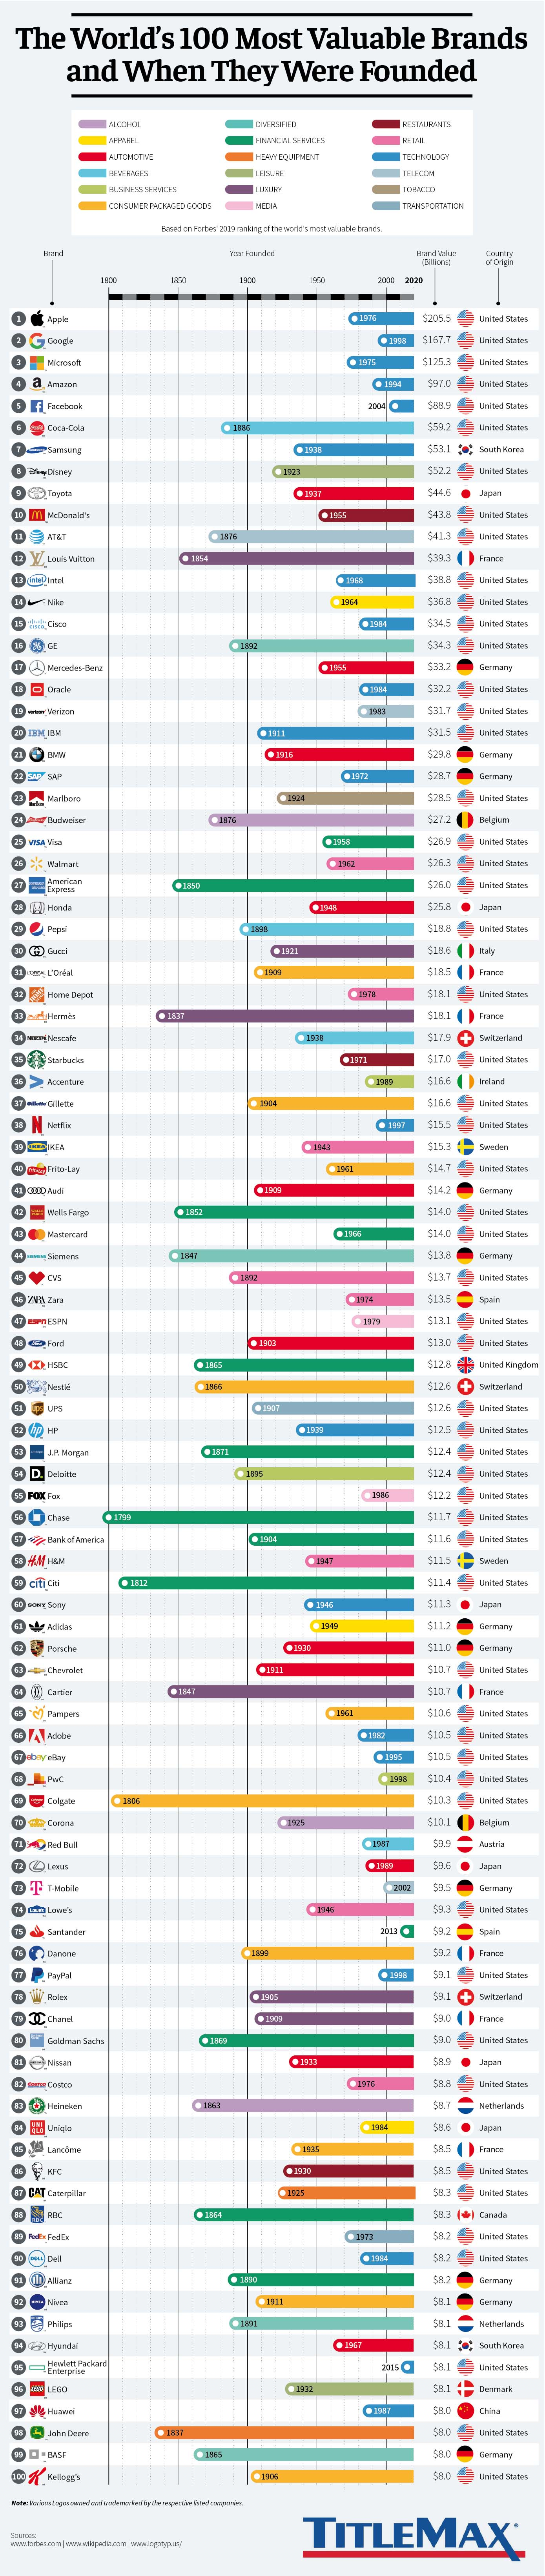 The World's 100 Most Valuable Brands & When They Were Founded